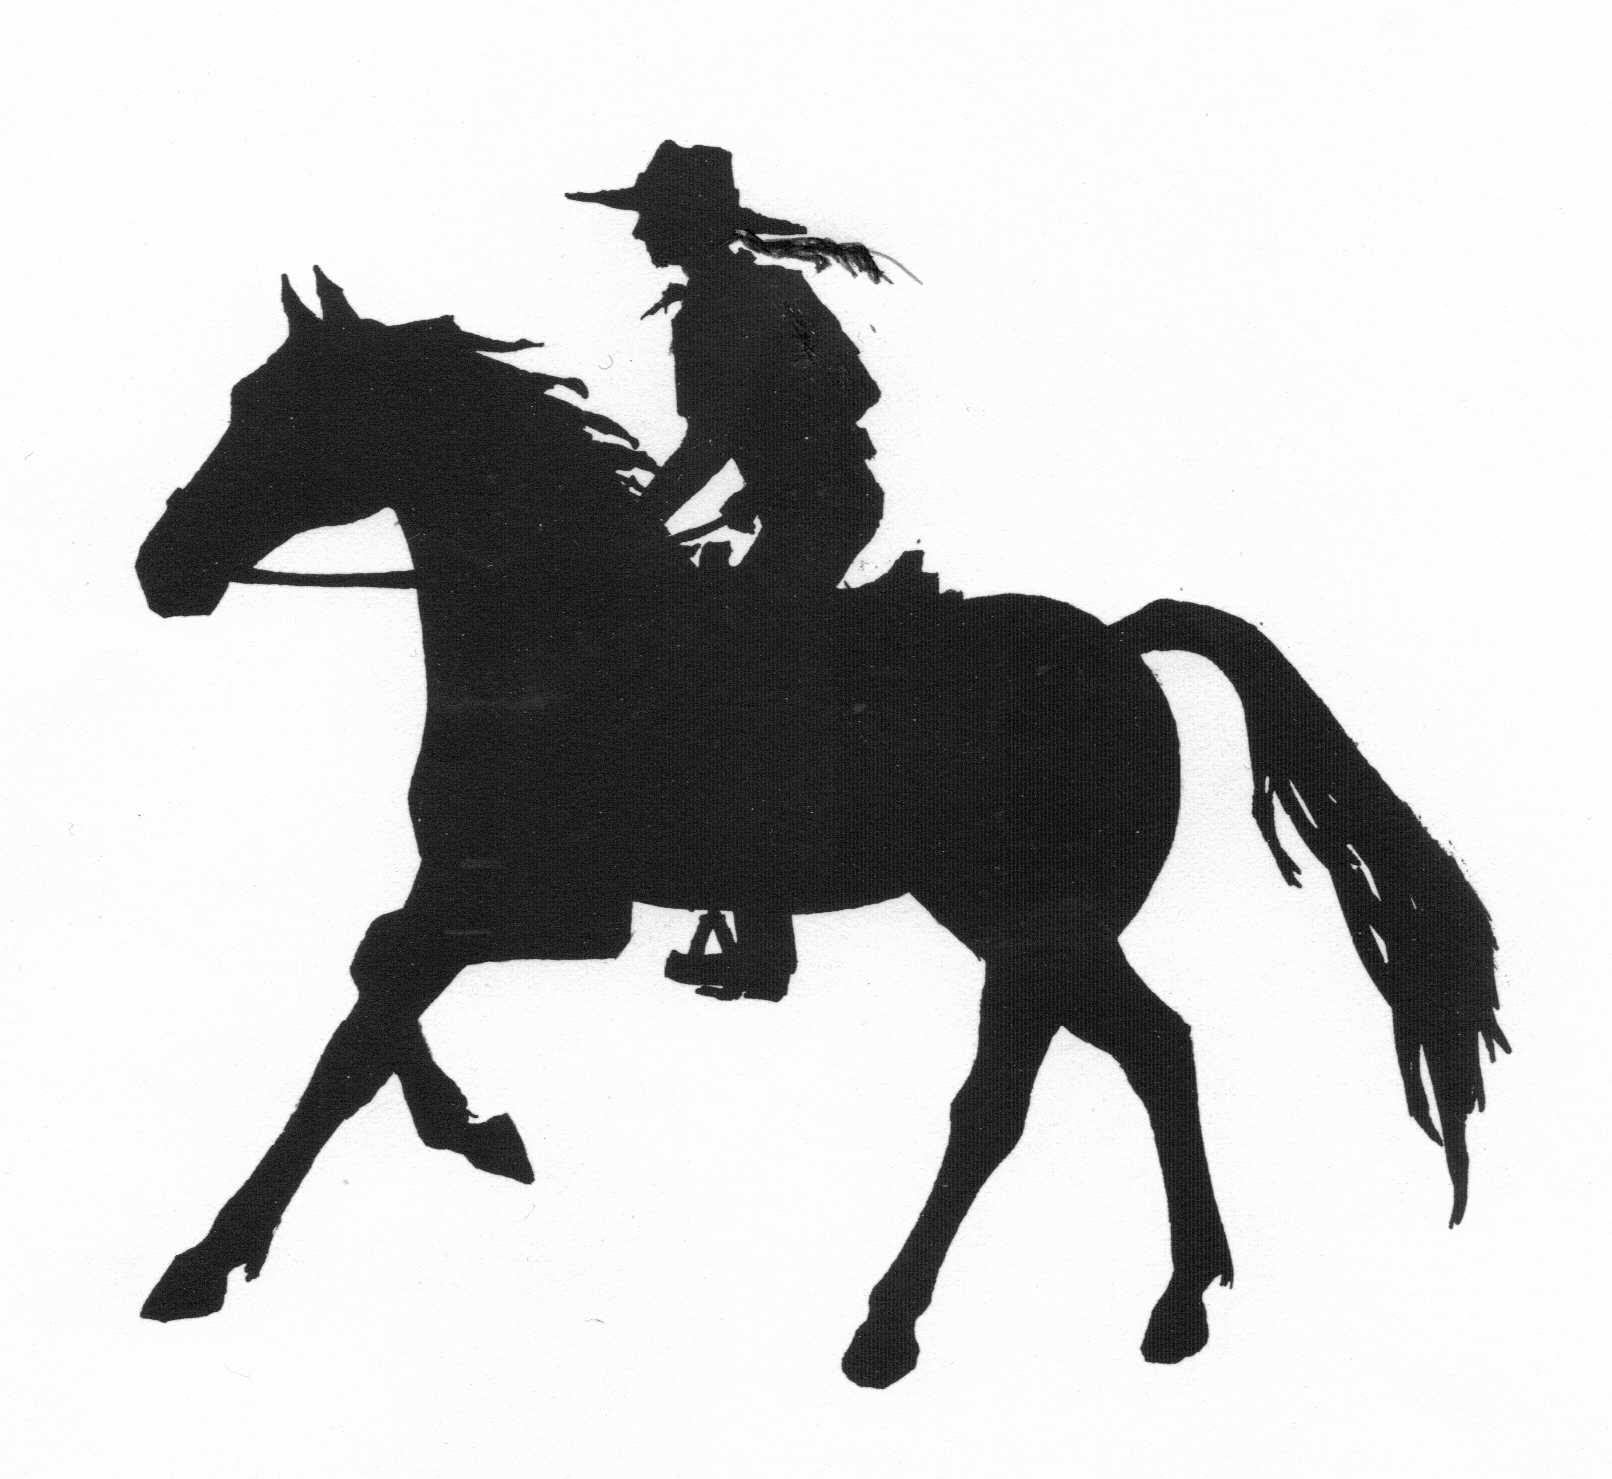 silhouette of girl riding a horse on a riding safari by Sophie Neville